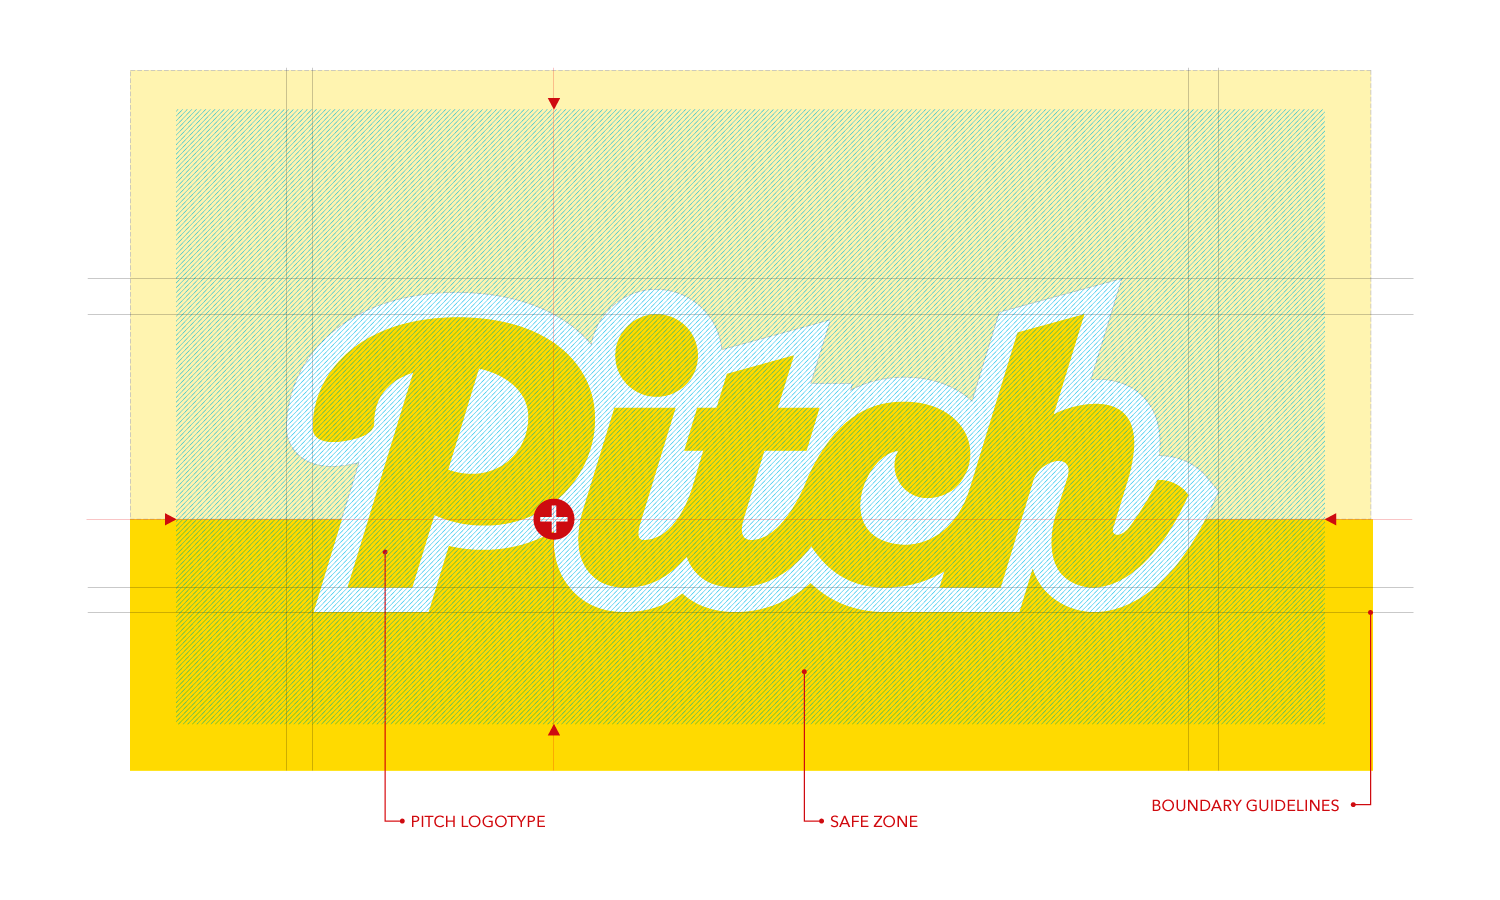 logo design for the Pitch Fanzine with guidelines.